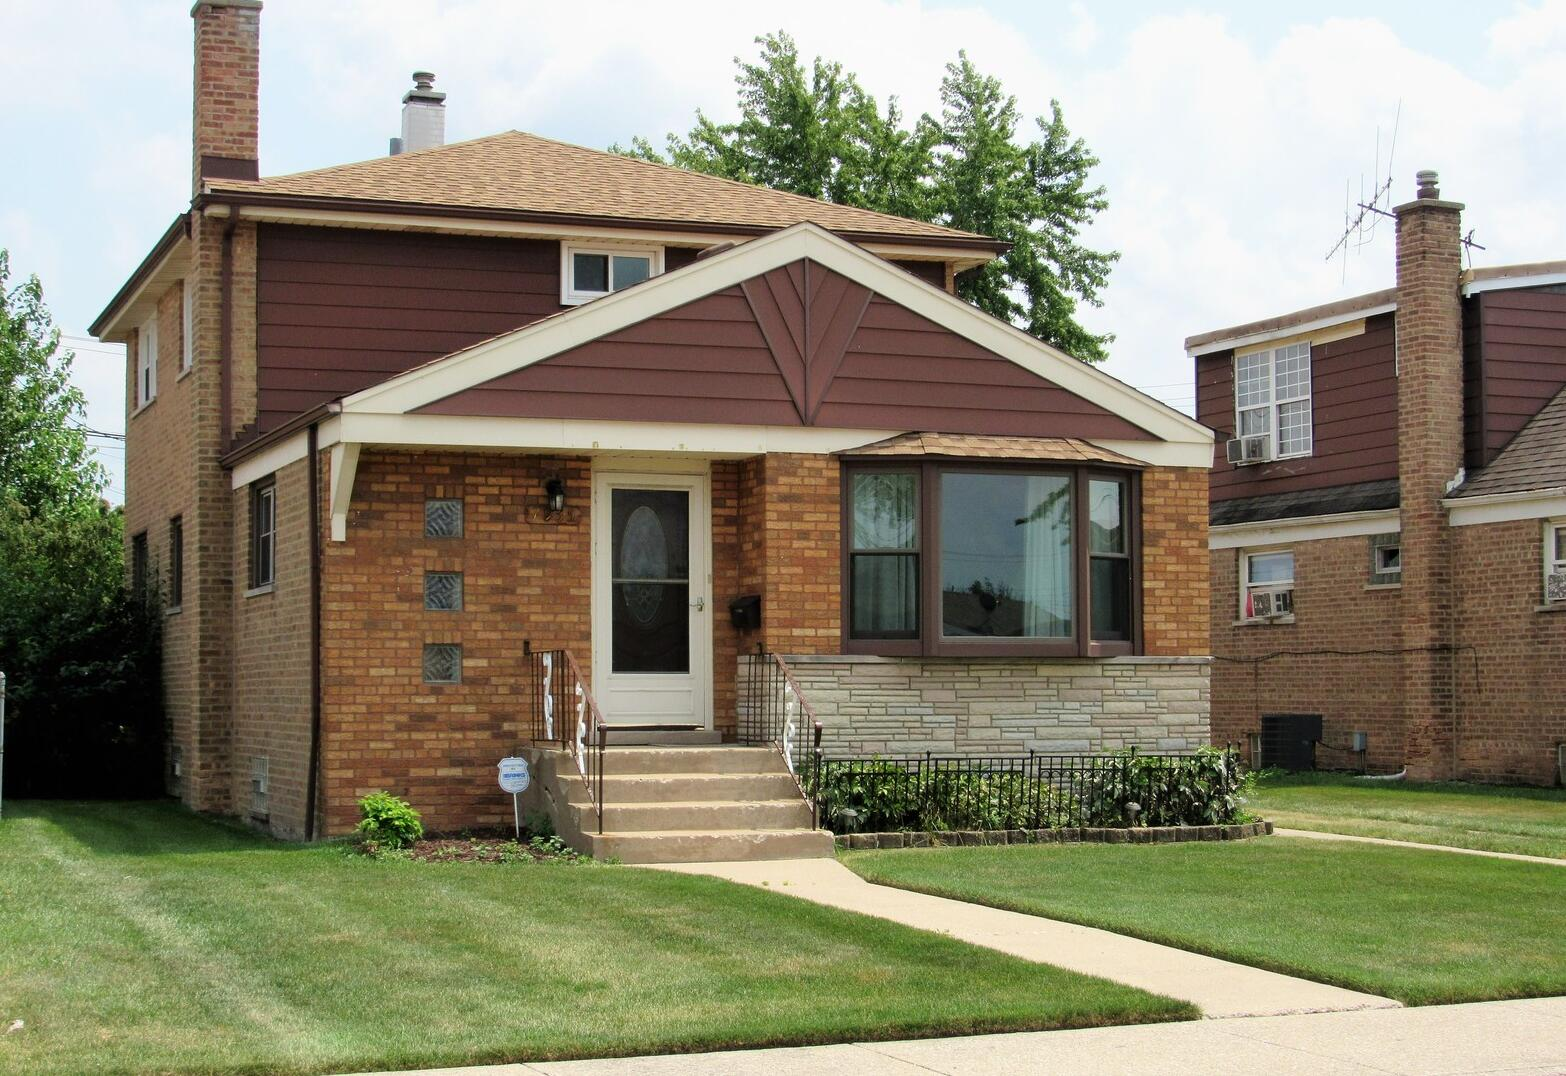 Photo of 7935 Kenneth Chicago IL 60652